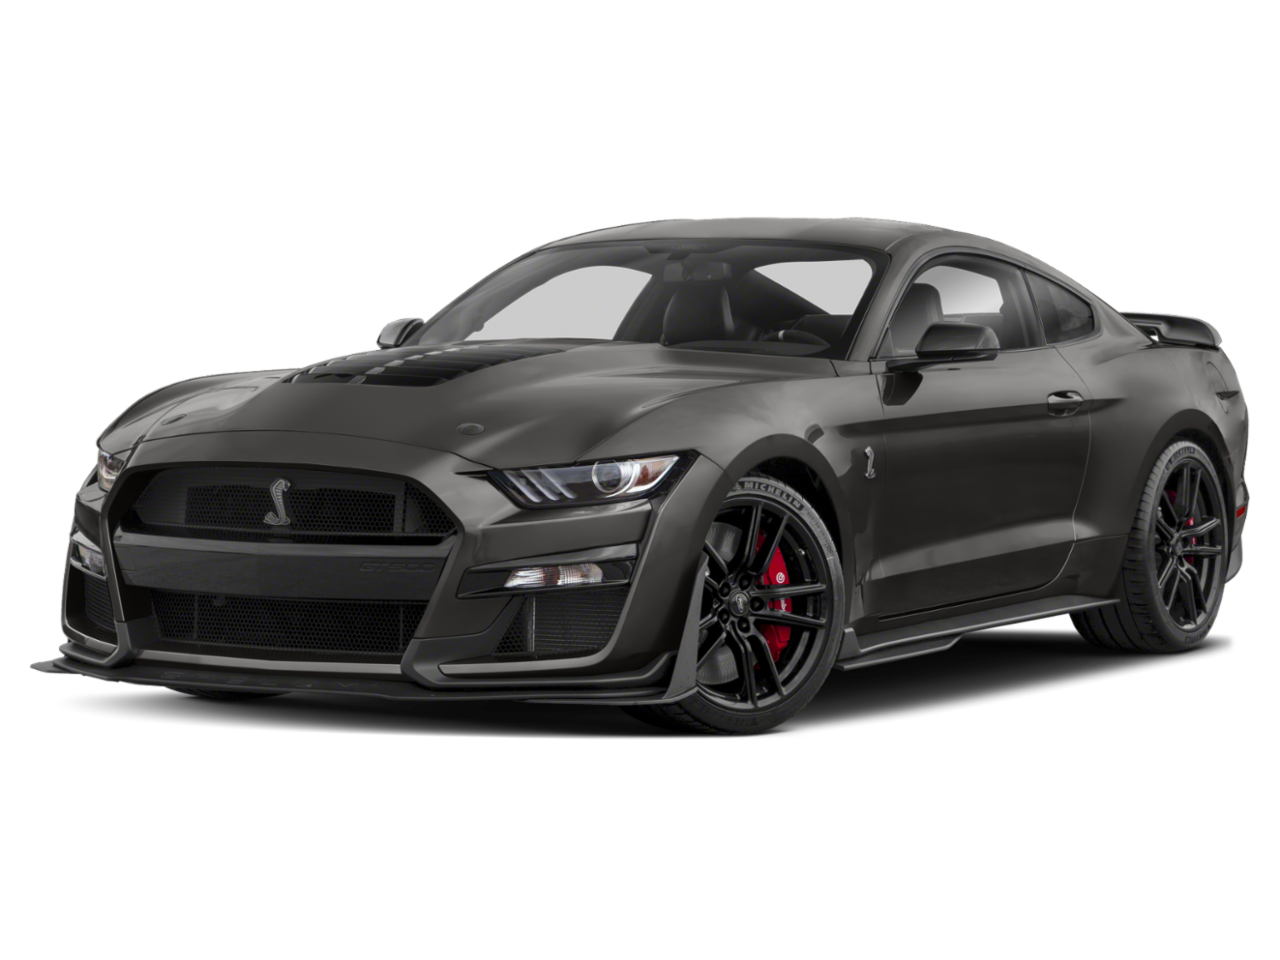 2020 Ford Mustang Shelby GT500 2D Coupe